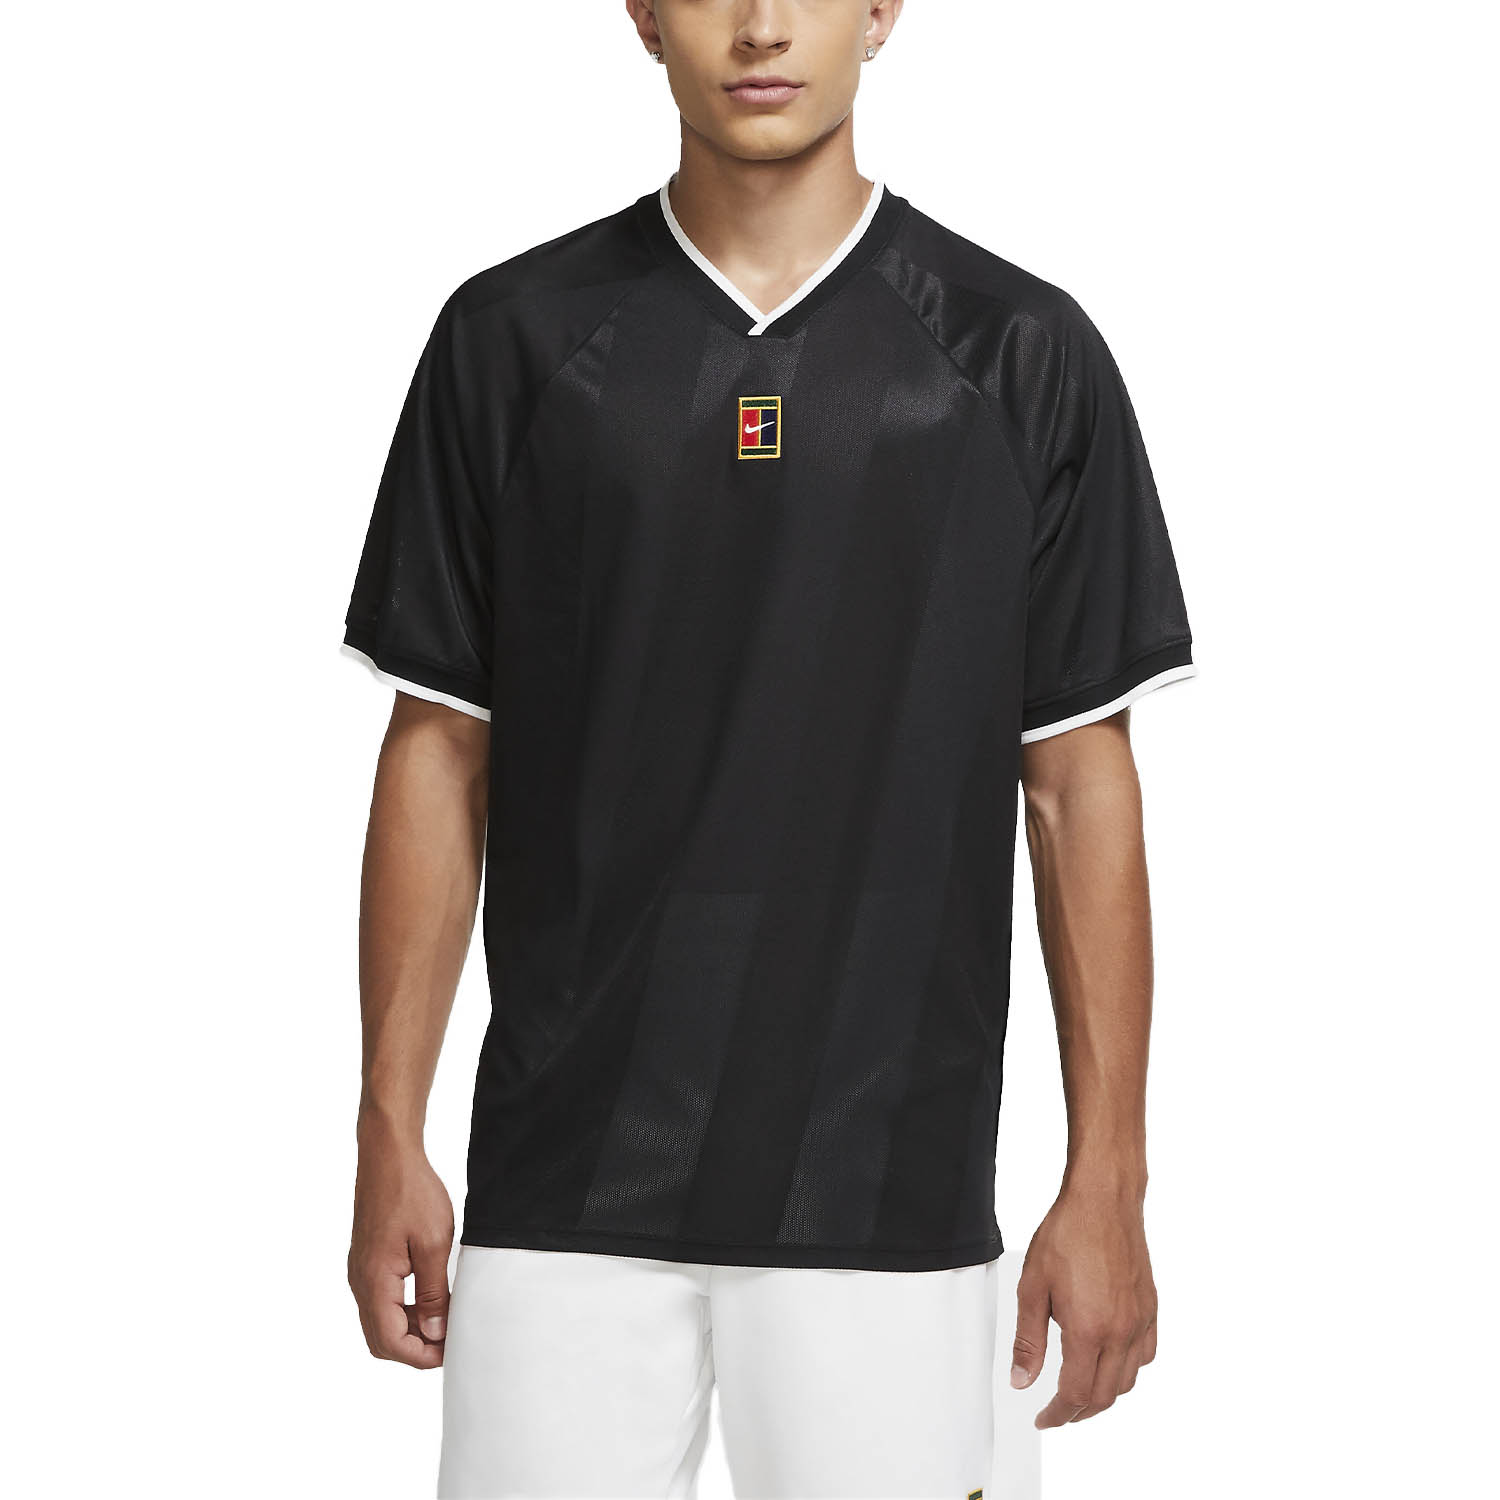 Nike Court Breathe Slam T-Shirt - Black/White